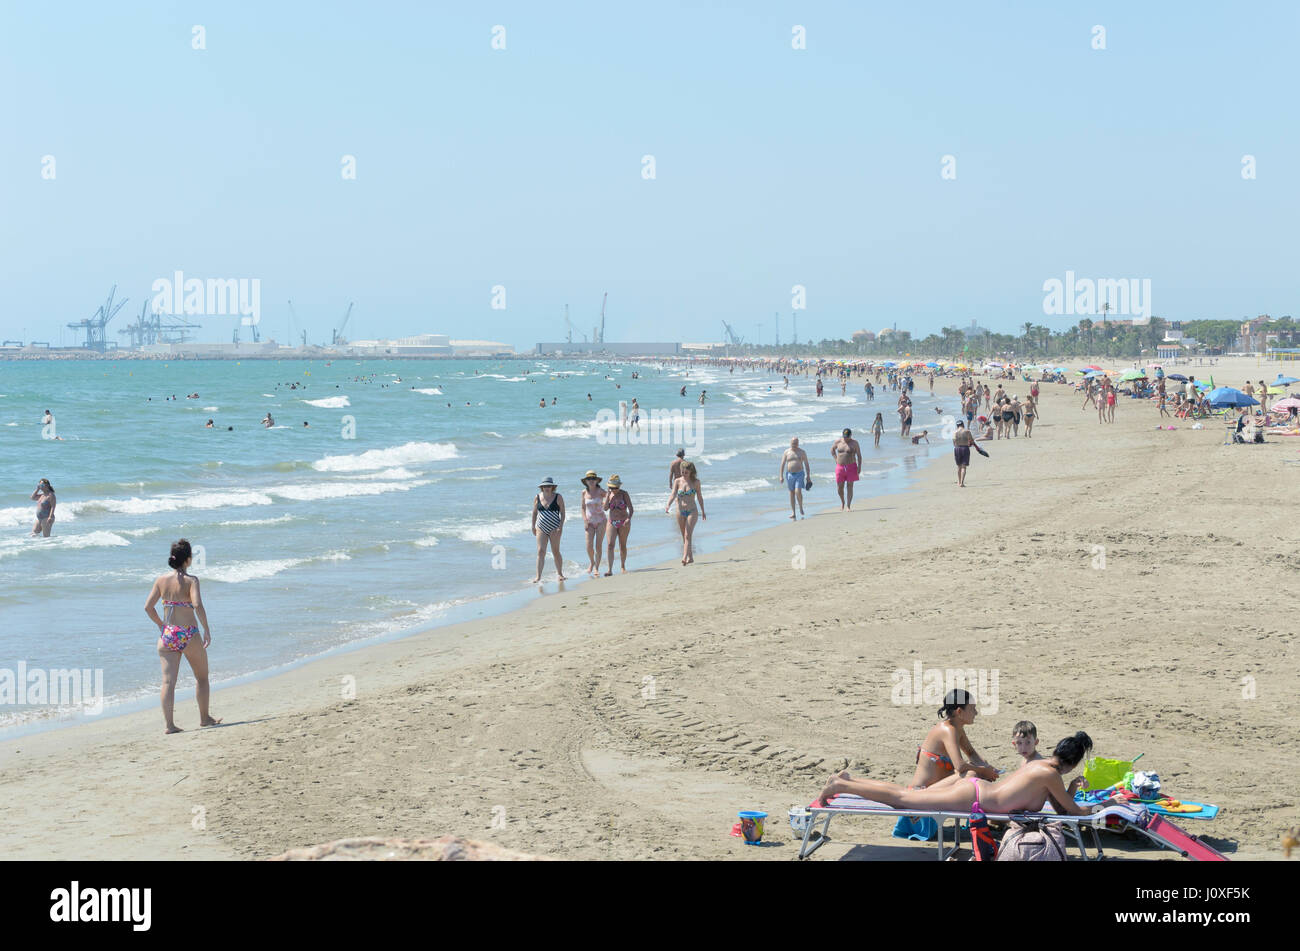 Castellon De La Plana High Resolution Stock Photography And Images Alamy